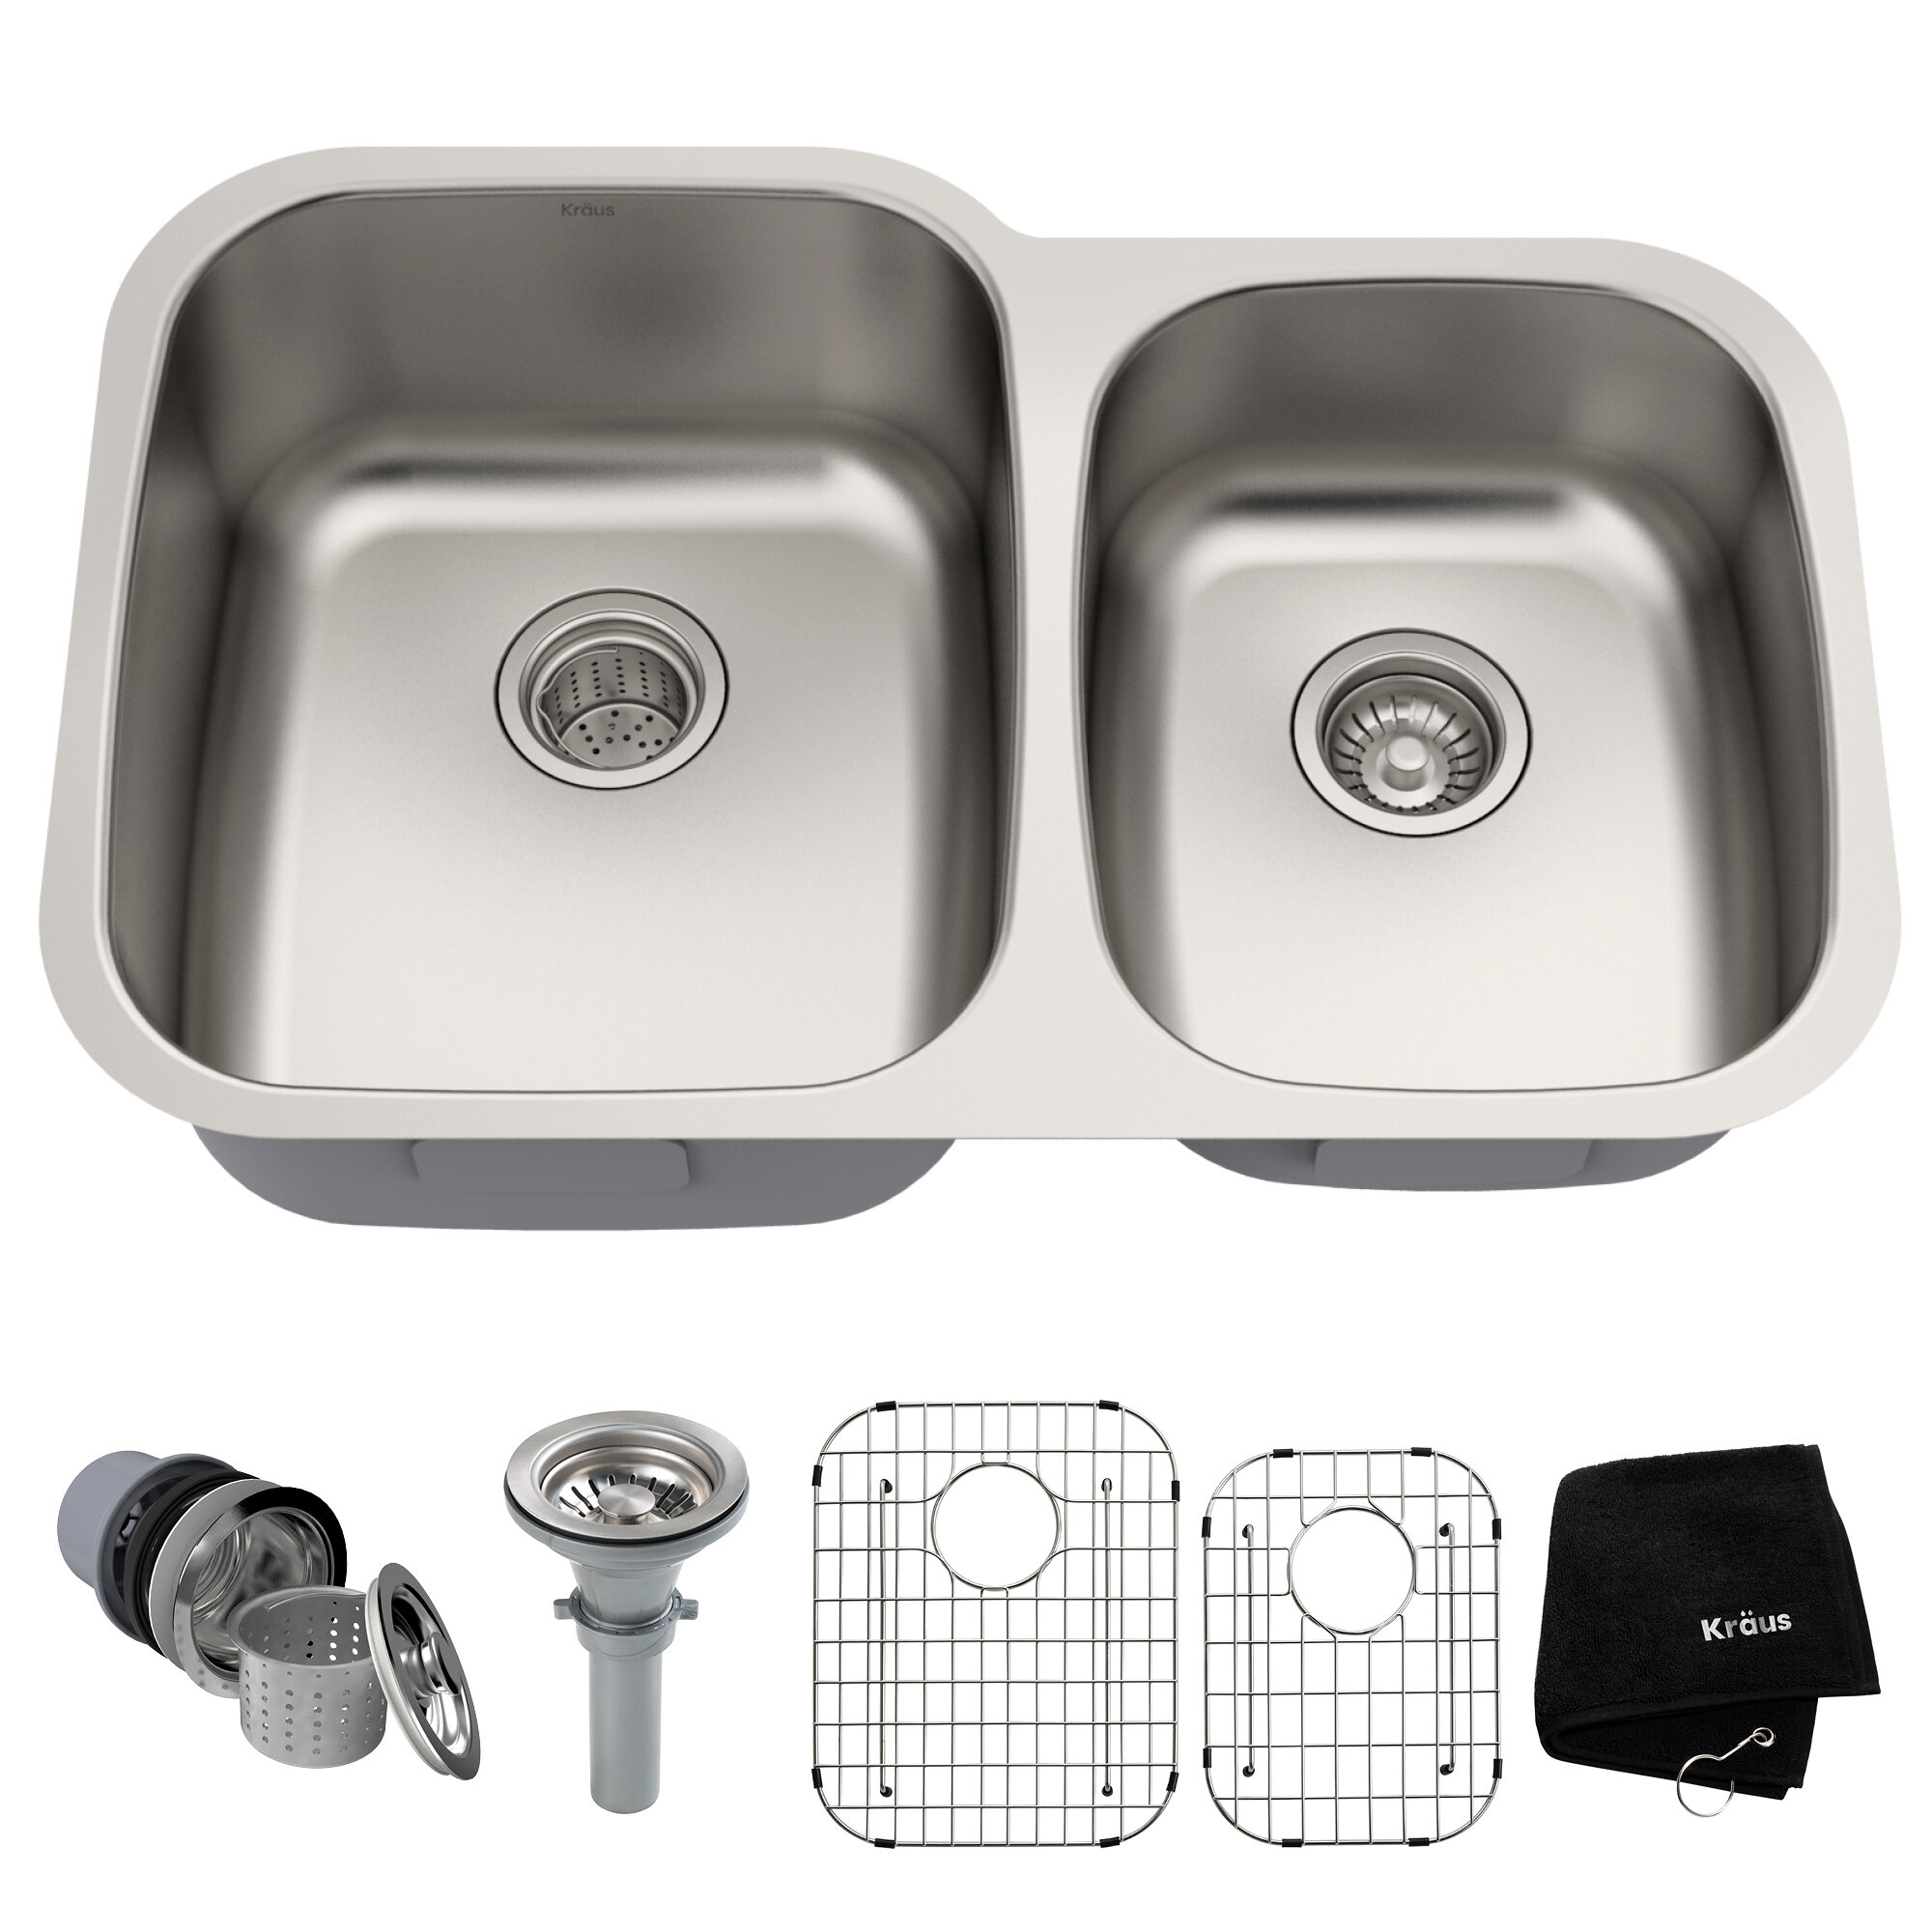 32 L X 21 W Double Basin Undermount Kitchen Sink With Drain Assembly Reviews Allmodern